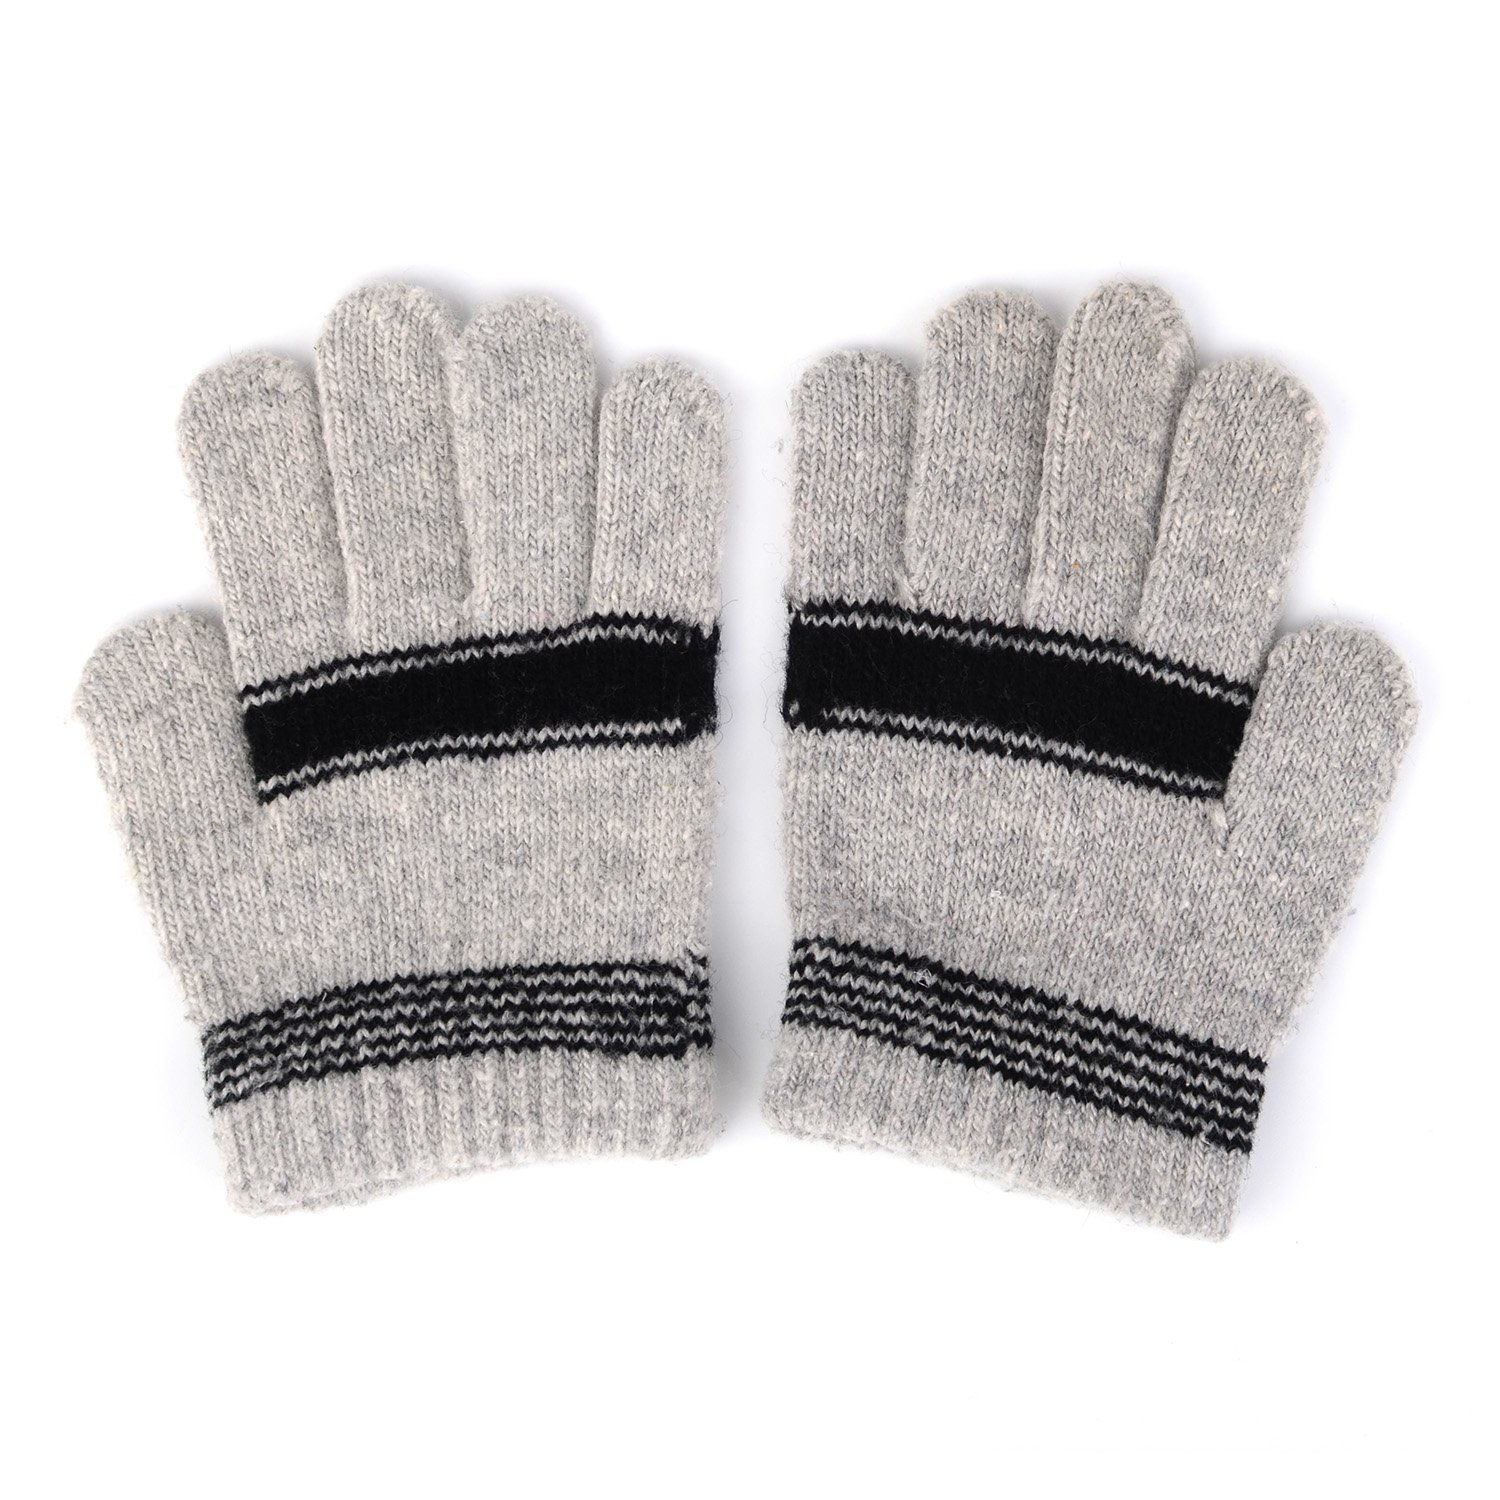 HomeDay Unisex Kids Knitted Magic Gloves Striped Warm Gloves